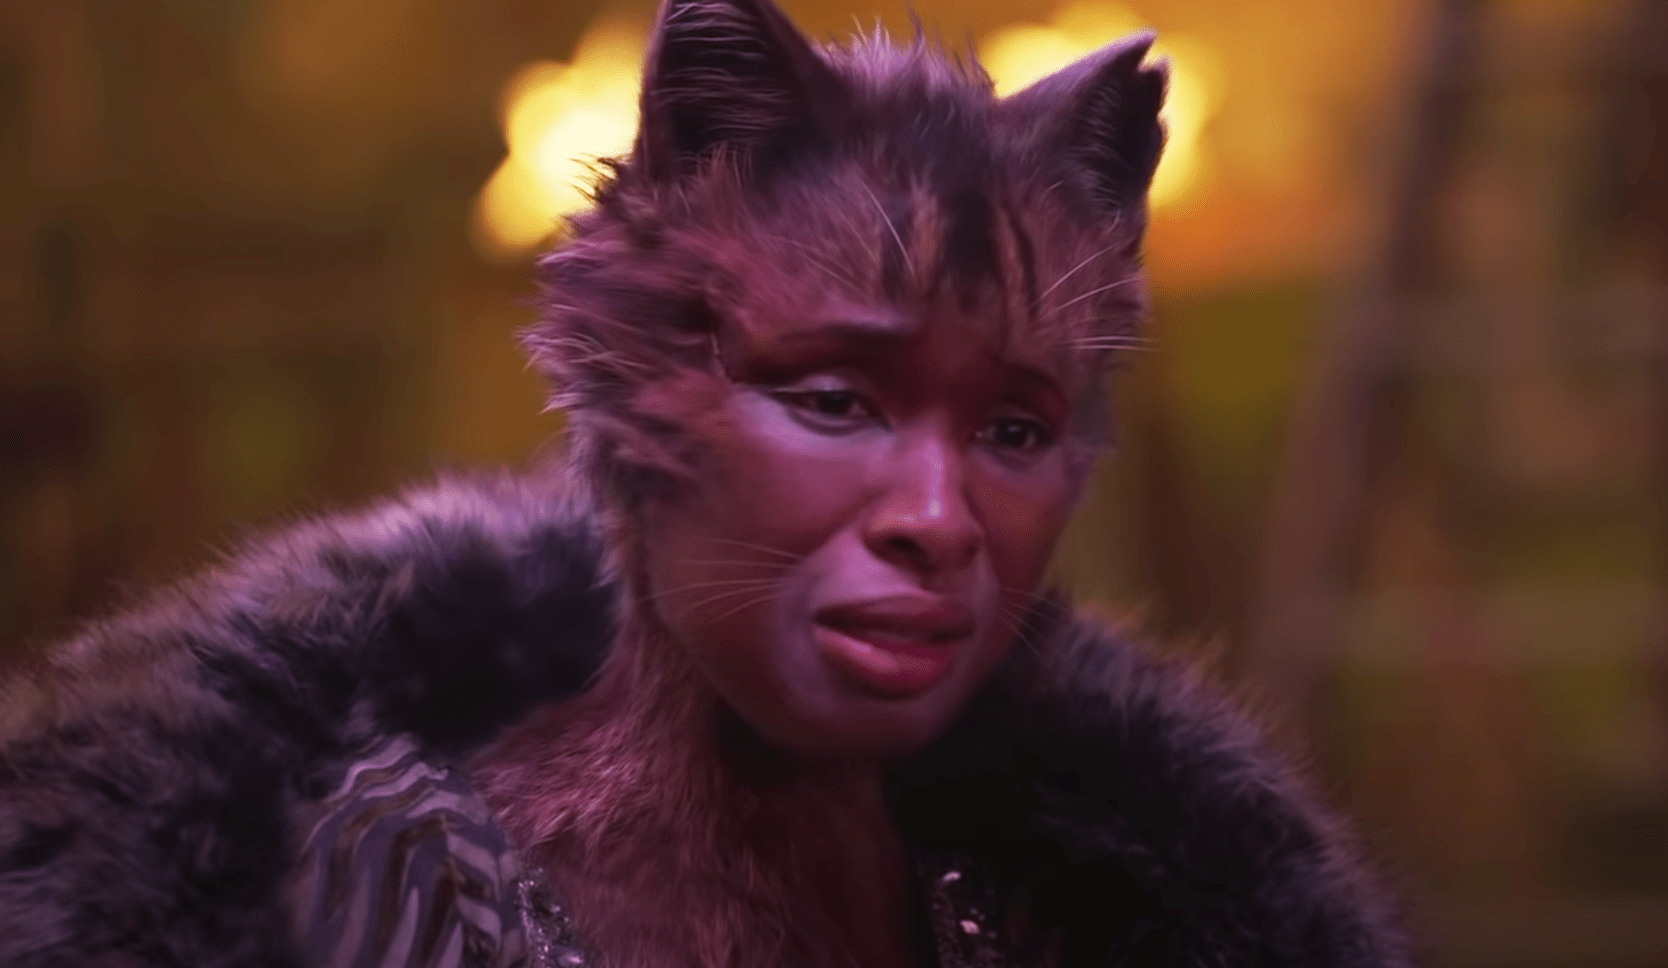 Jennifer Hudson didn't know she'd have 'ears or a tail' in Cats     - CNET